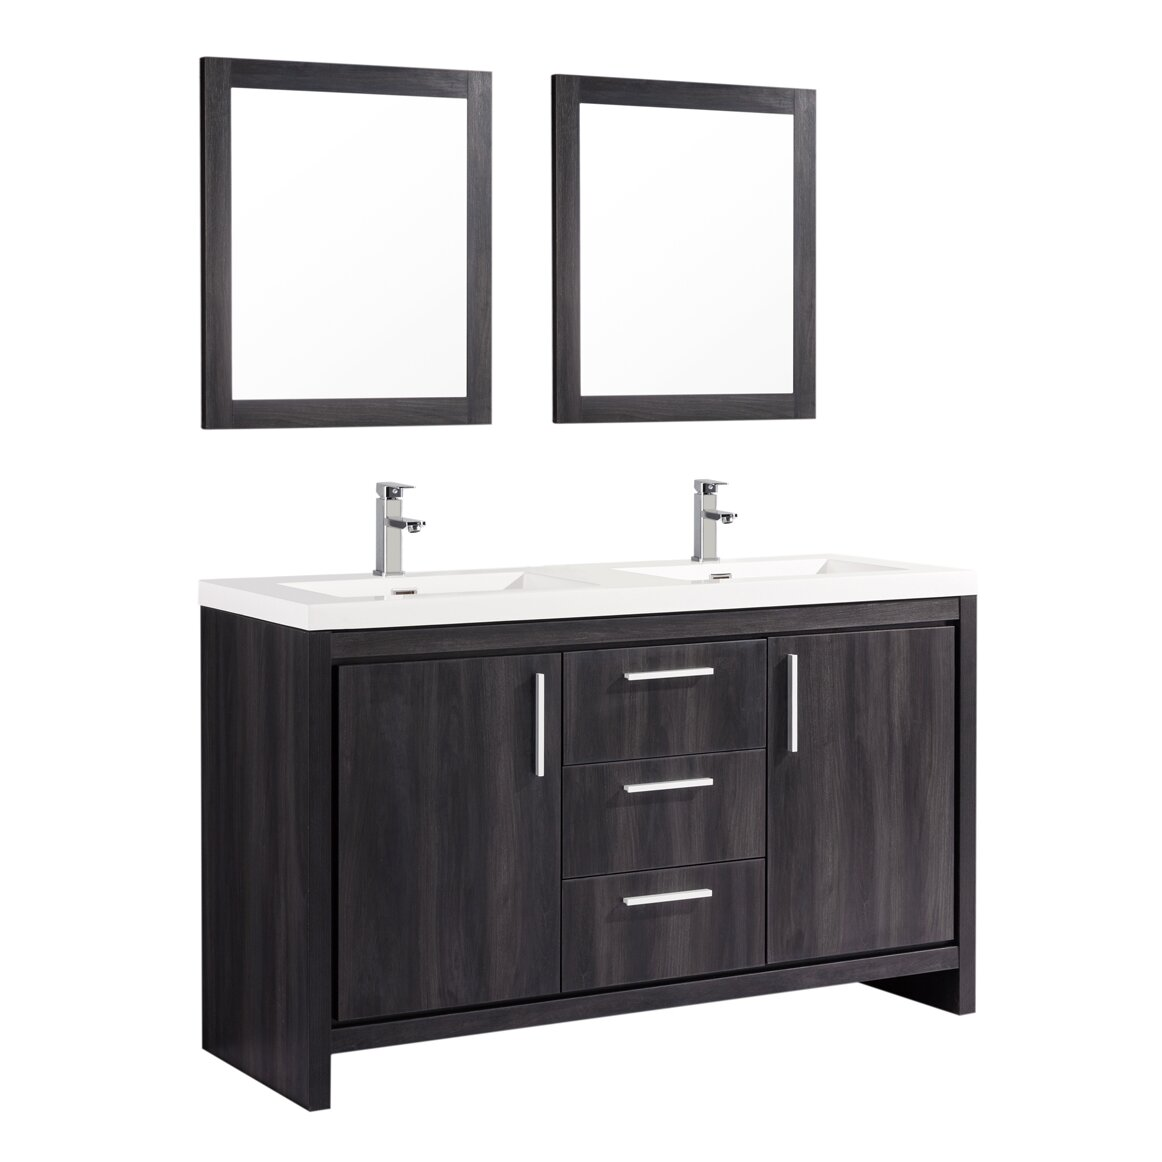 22 Innovative Bathroom Mirrors Double Sink Vanity